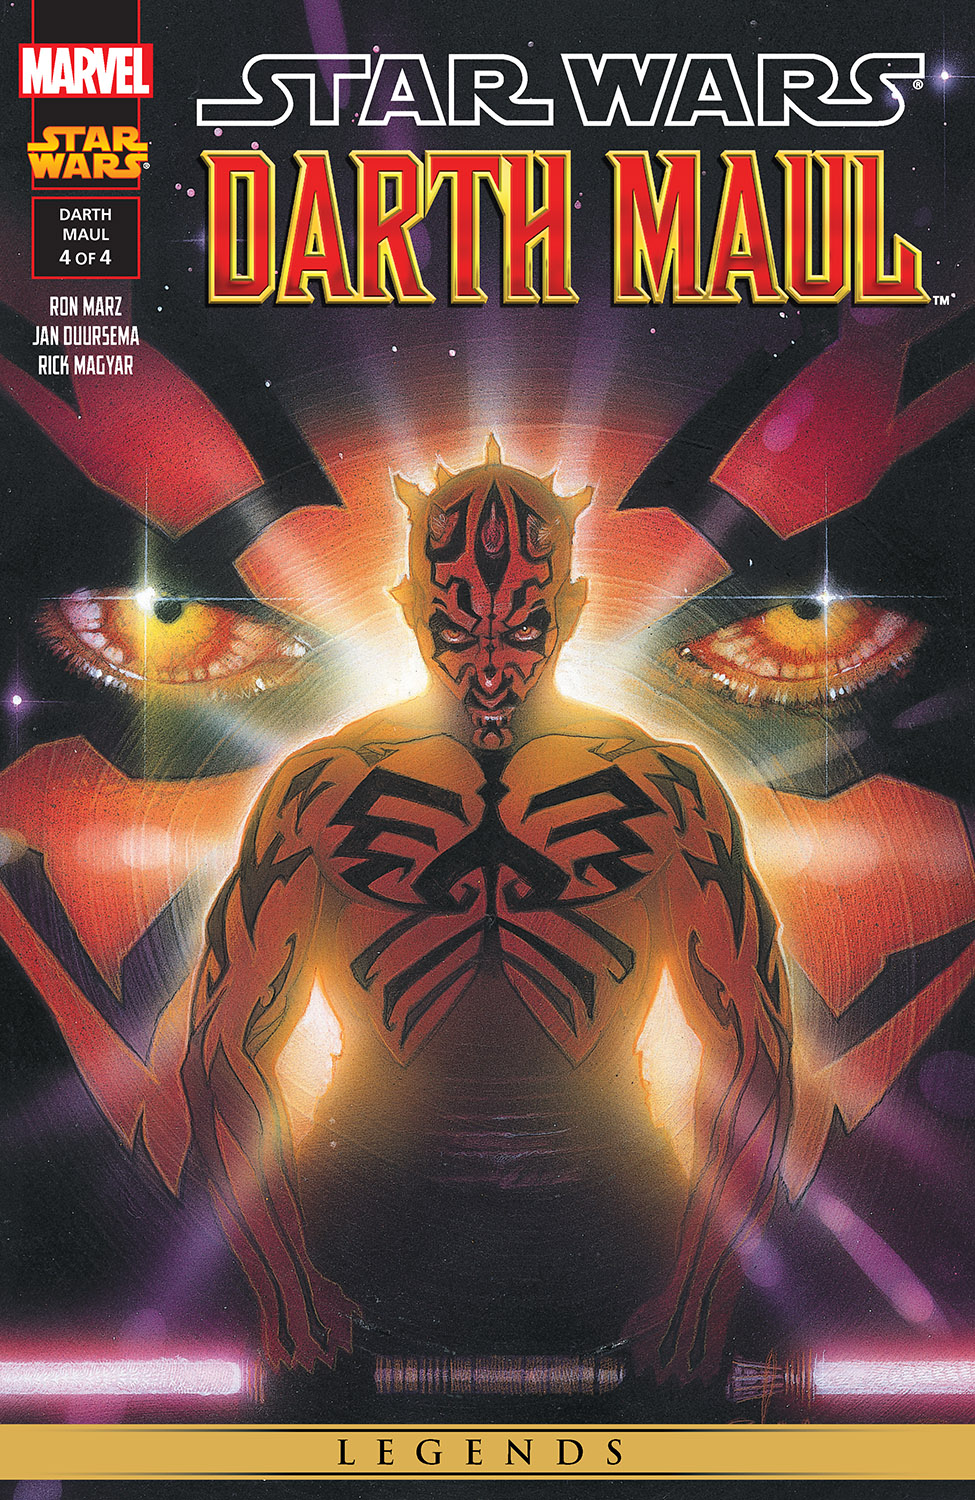 Star Wars: Darth Maul (2000) #4